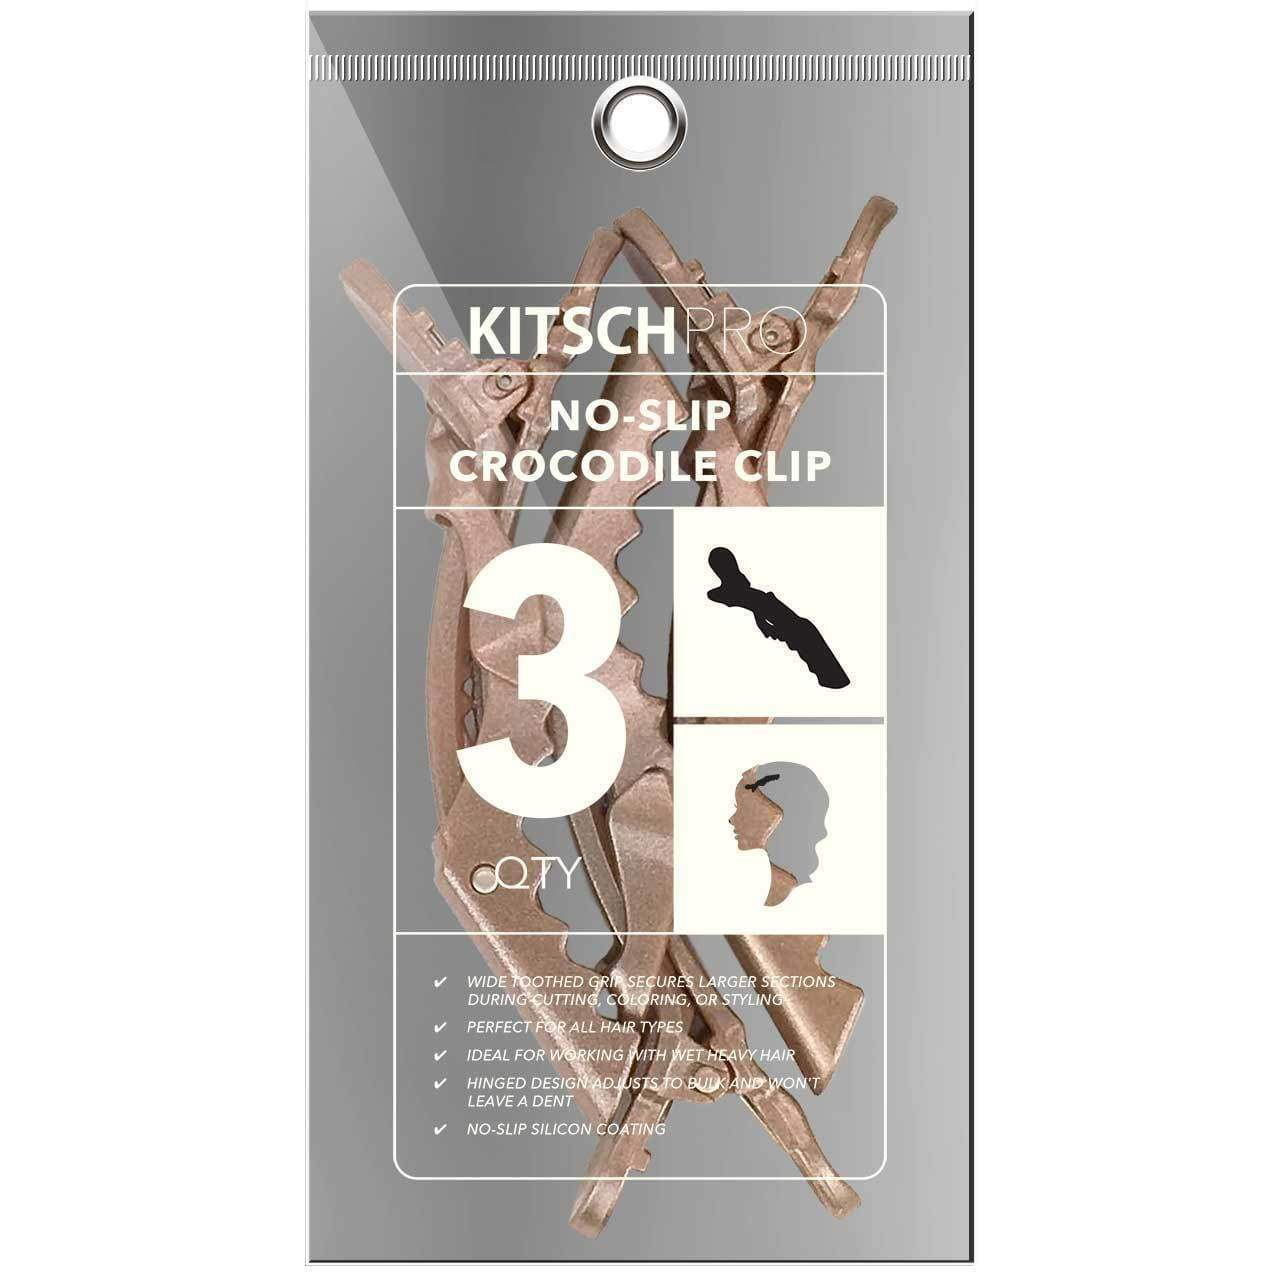 Kitsch Pro Crocodile Clips Gold (Set of 3)